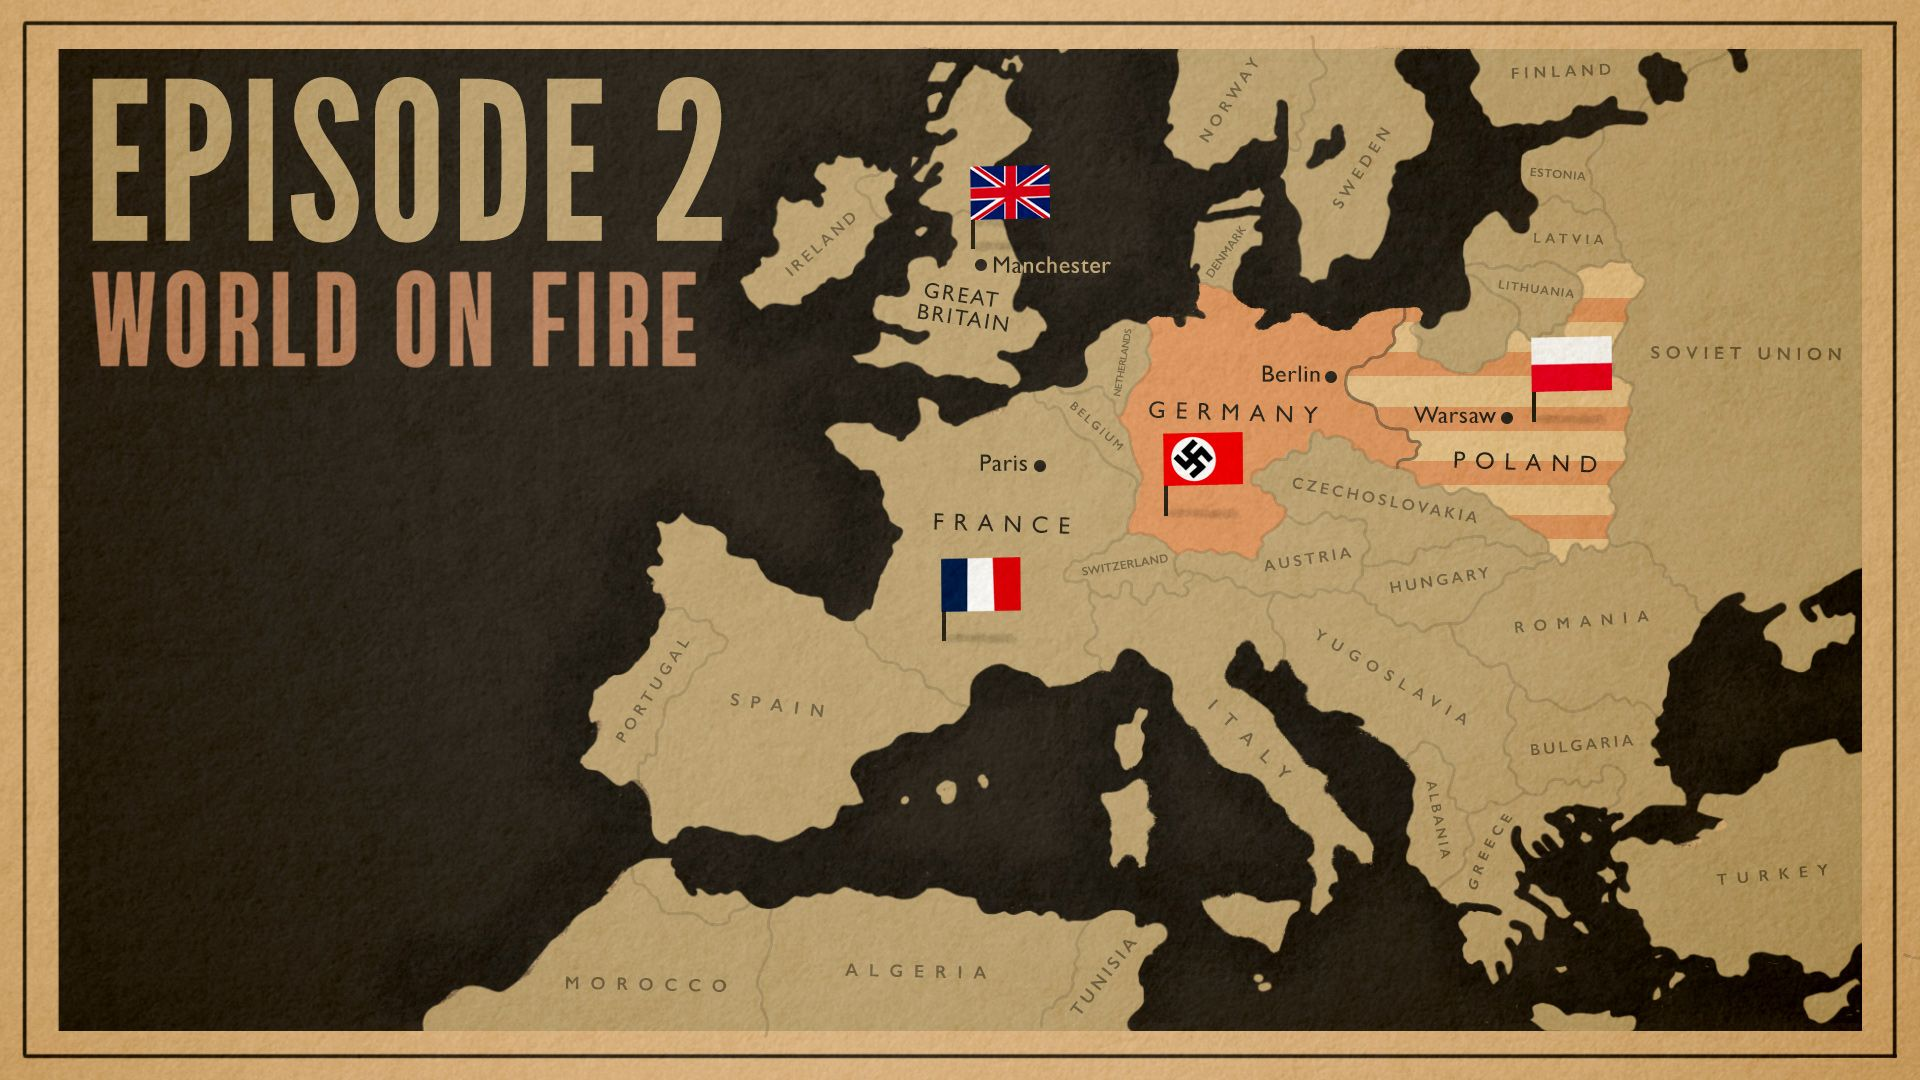 World on Fire Episode 2 map of europe 1939